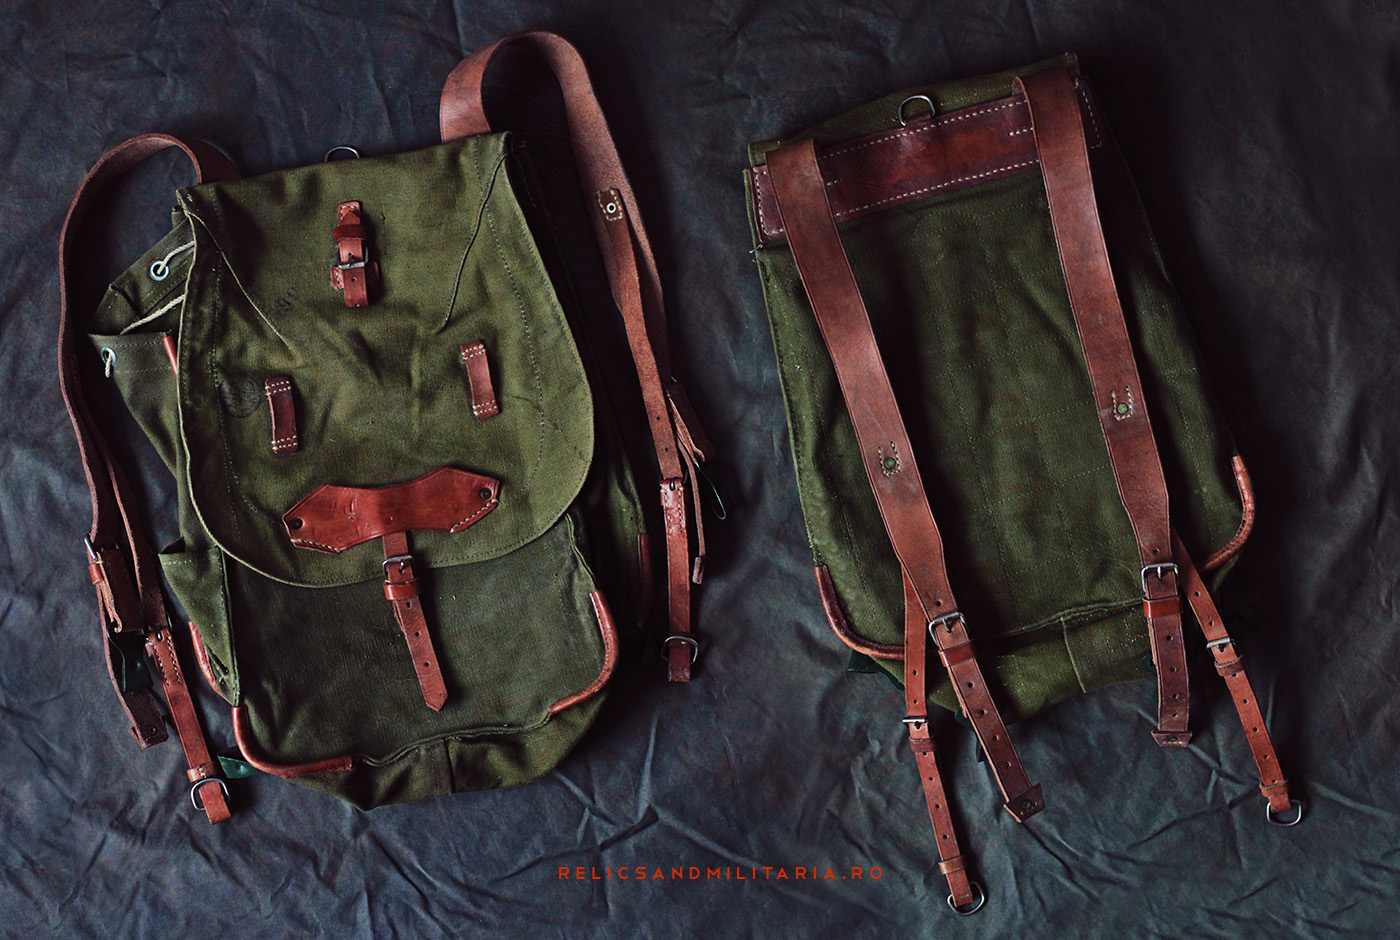 Romanian Army Militaria - soldier's backpack used in World War Two